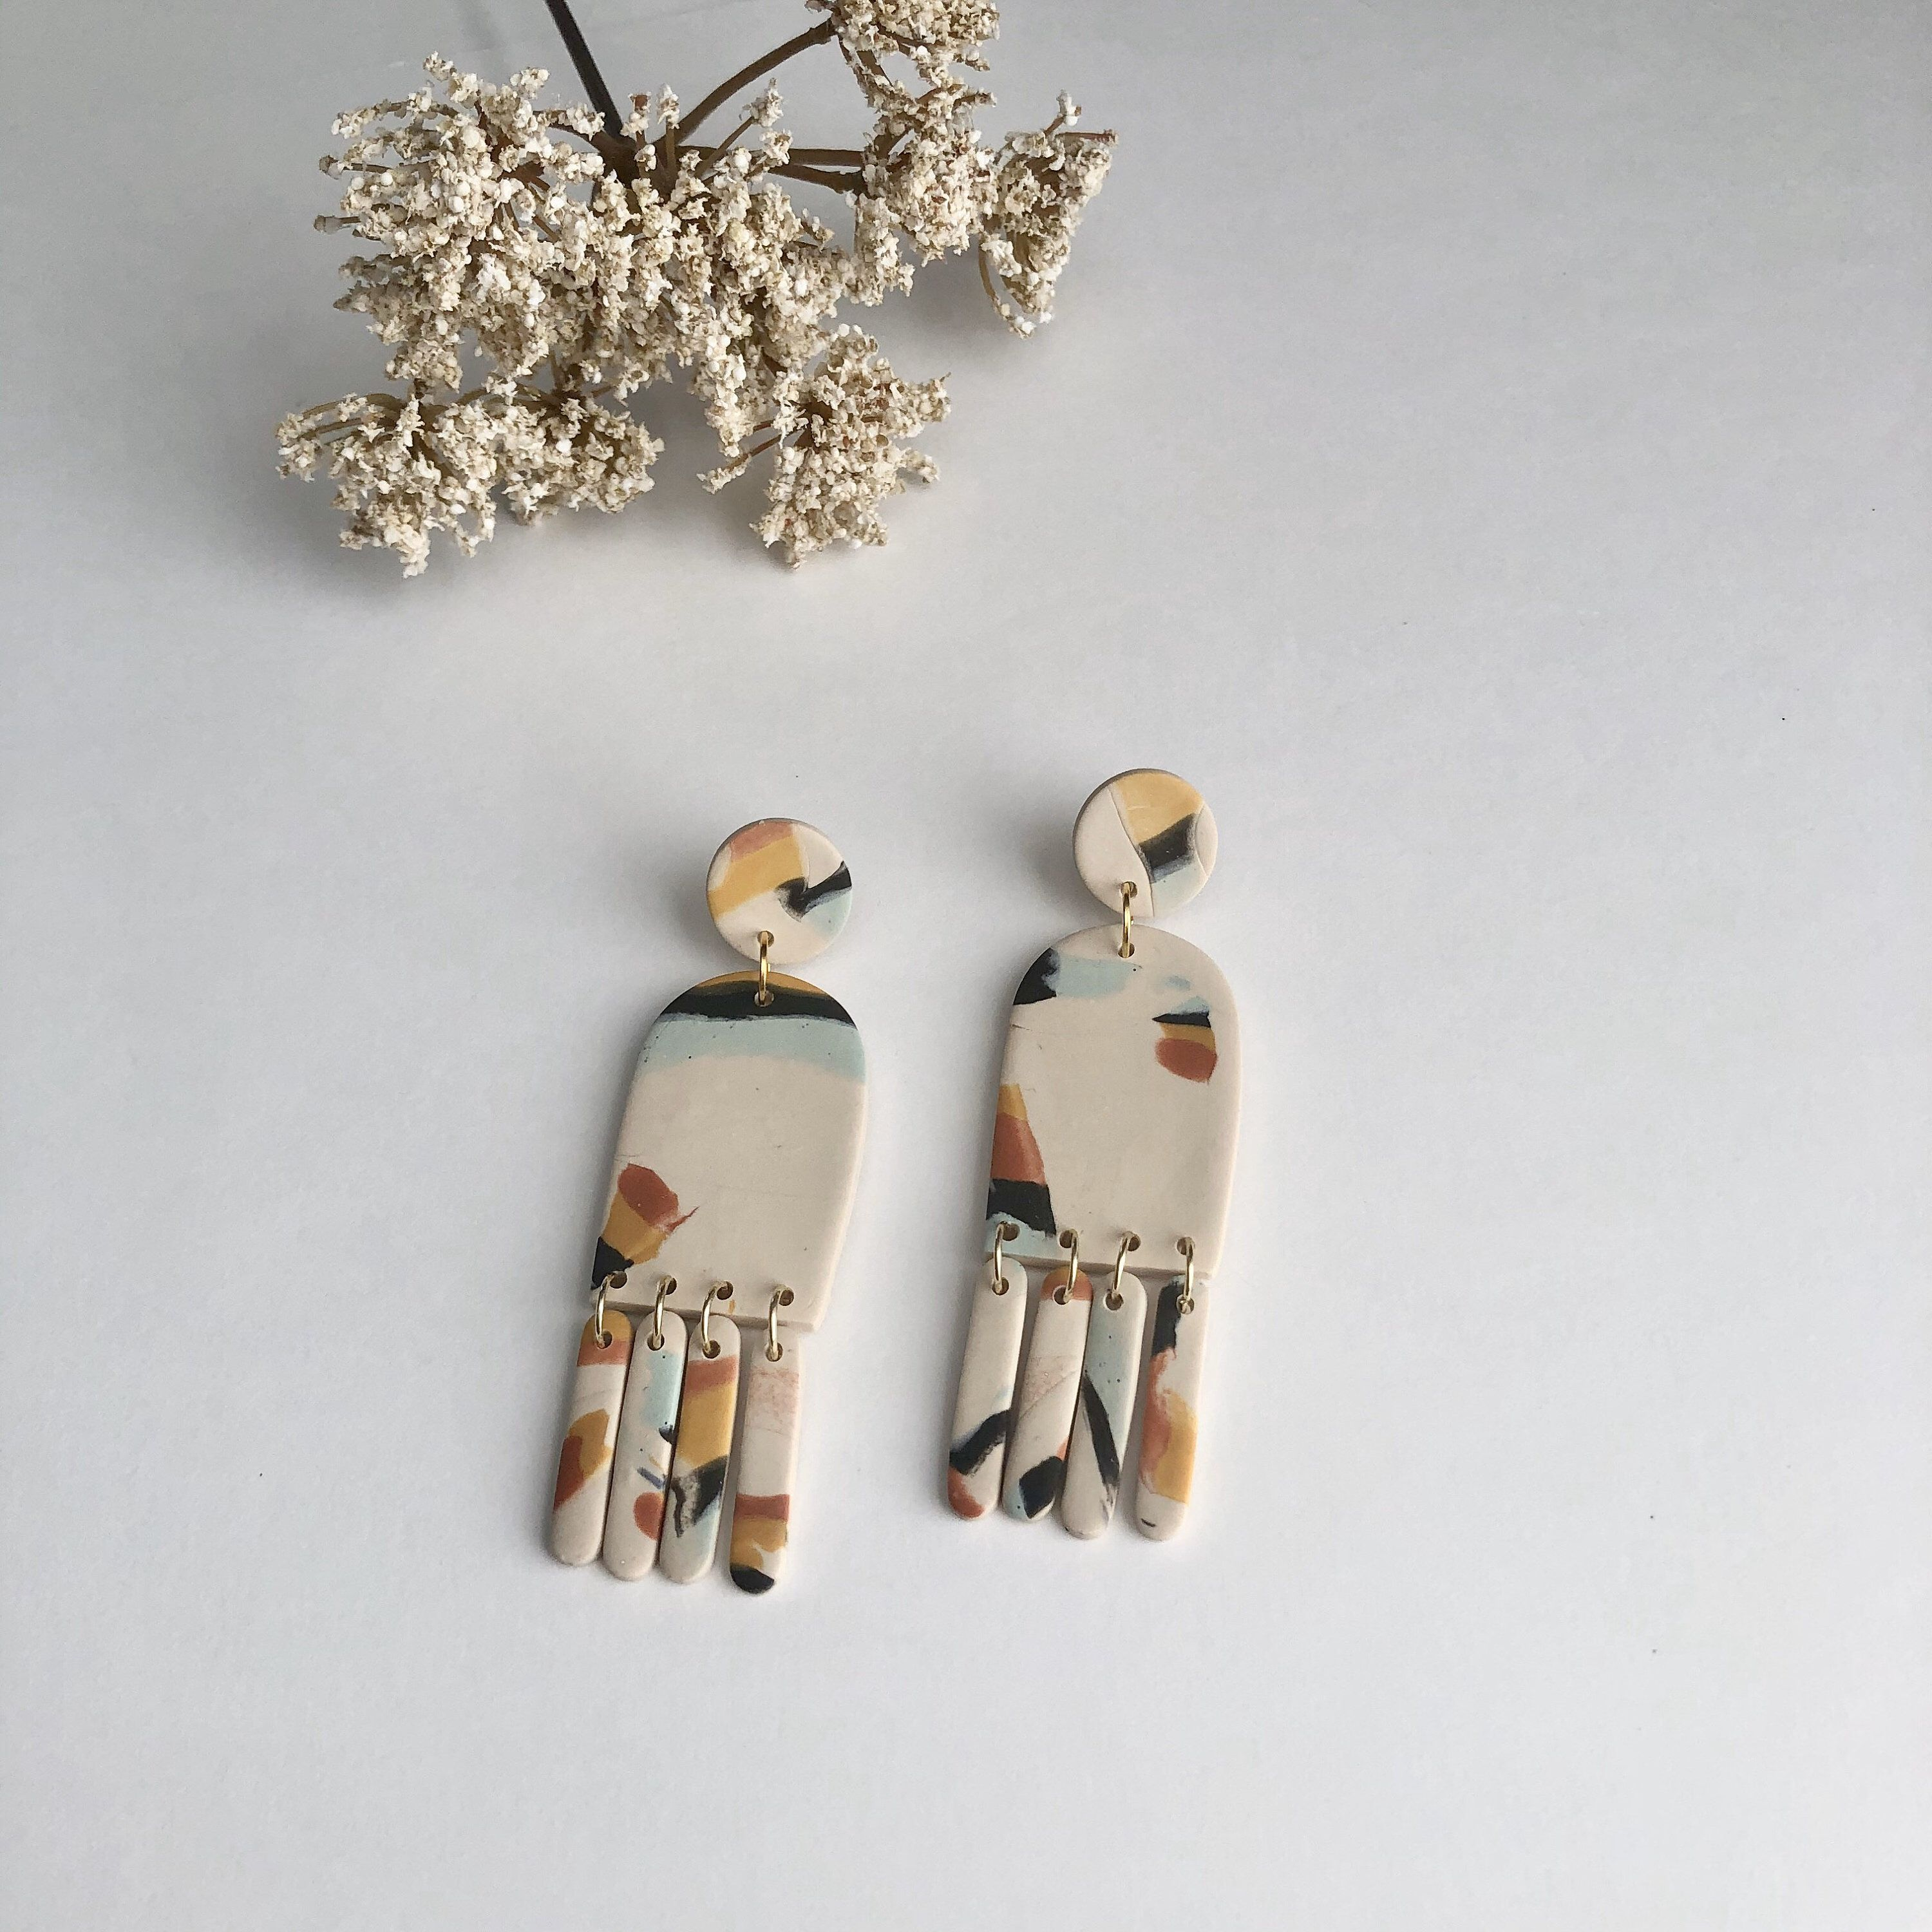 Handmade Gift For Women Elegant and Unique Earrings Polymer Clay Drop Earrings With Golden Stainless Steel Posts